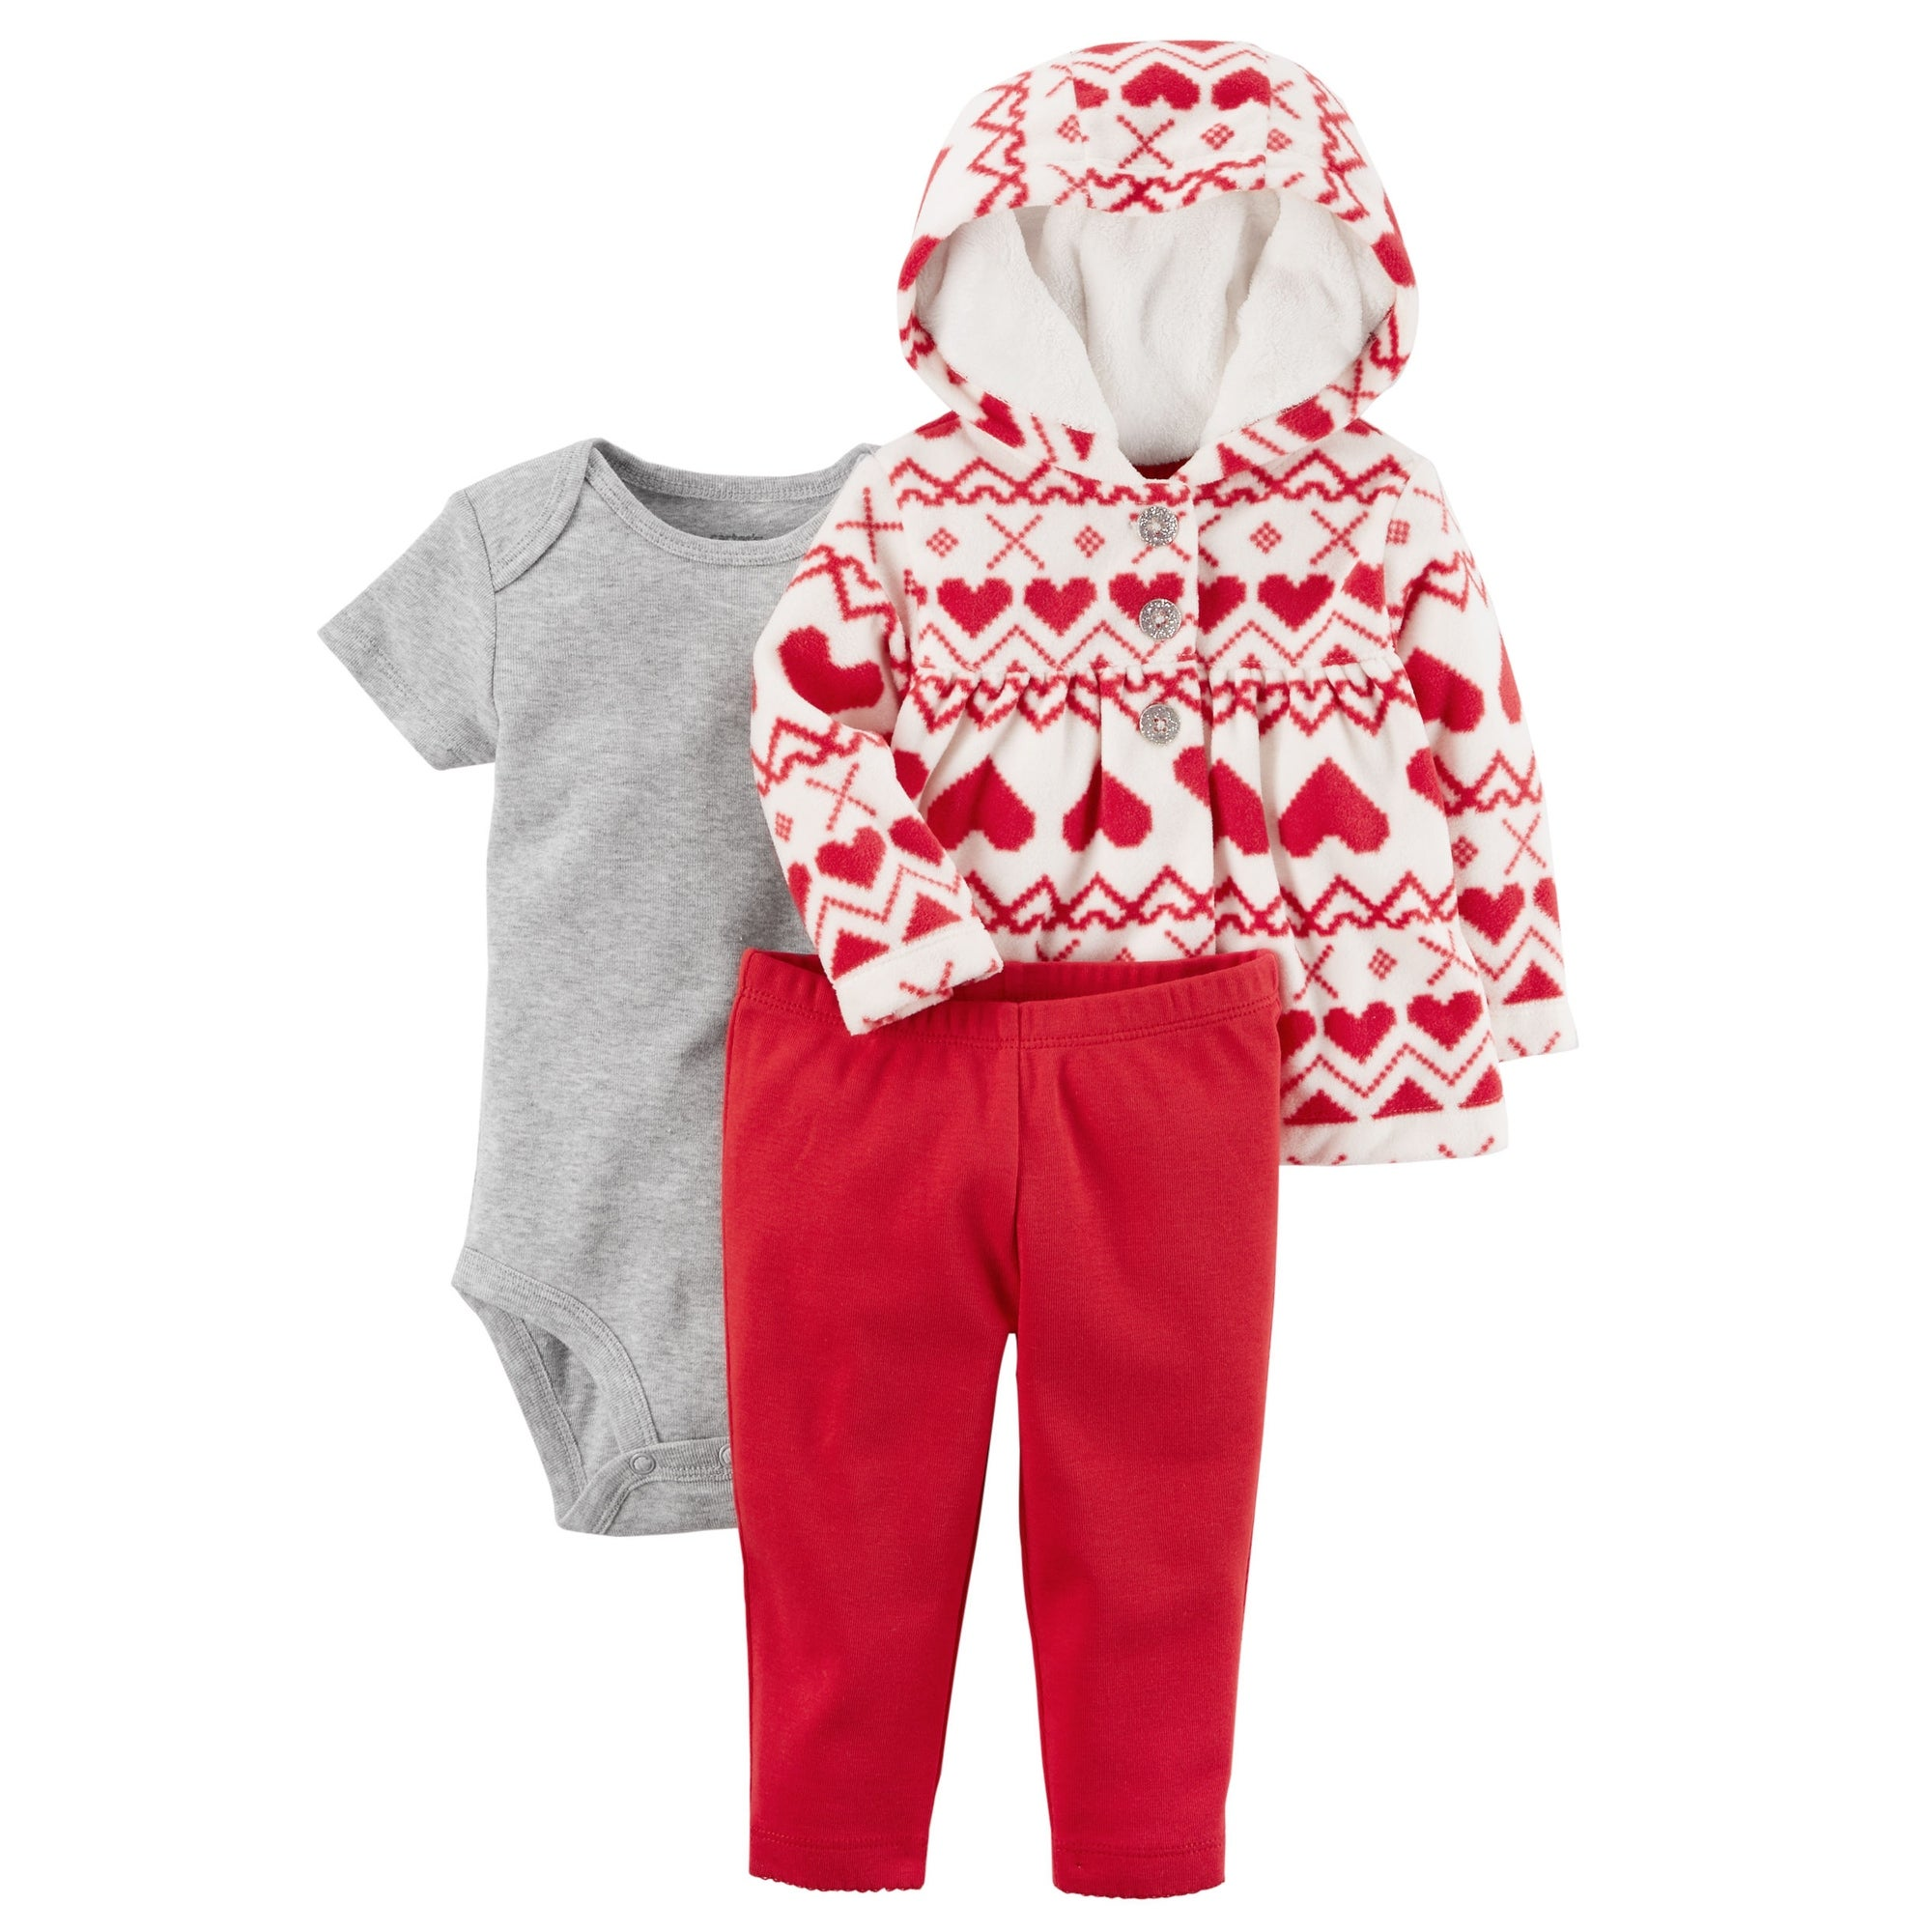 29b9067be Shop Carter's Baby Girls' 3 Piece Heart Print Little Jacket Set, 3 Months -  3 Months - Free Shipping On Orders Over $45 - Overstock - 19470203